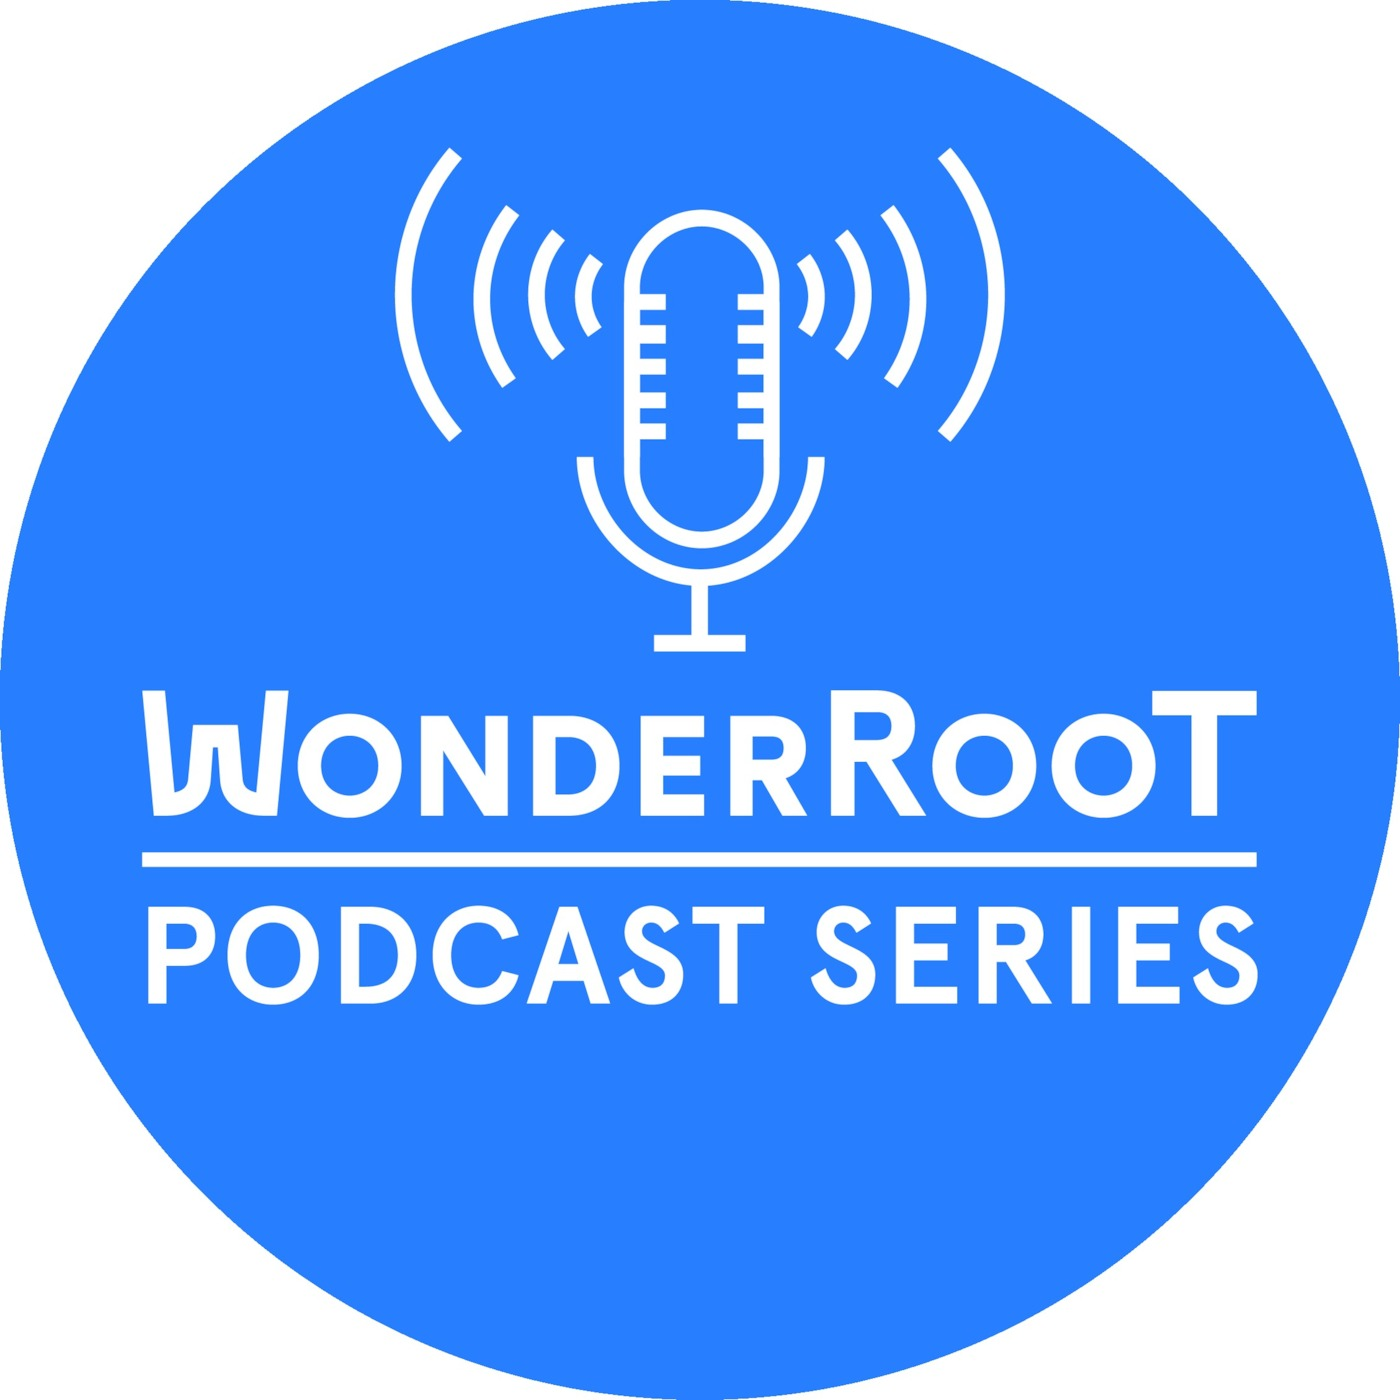 The WonderRoot Podcast Series